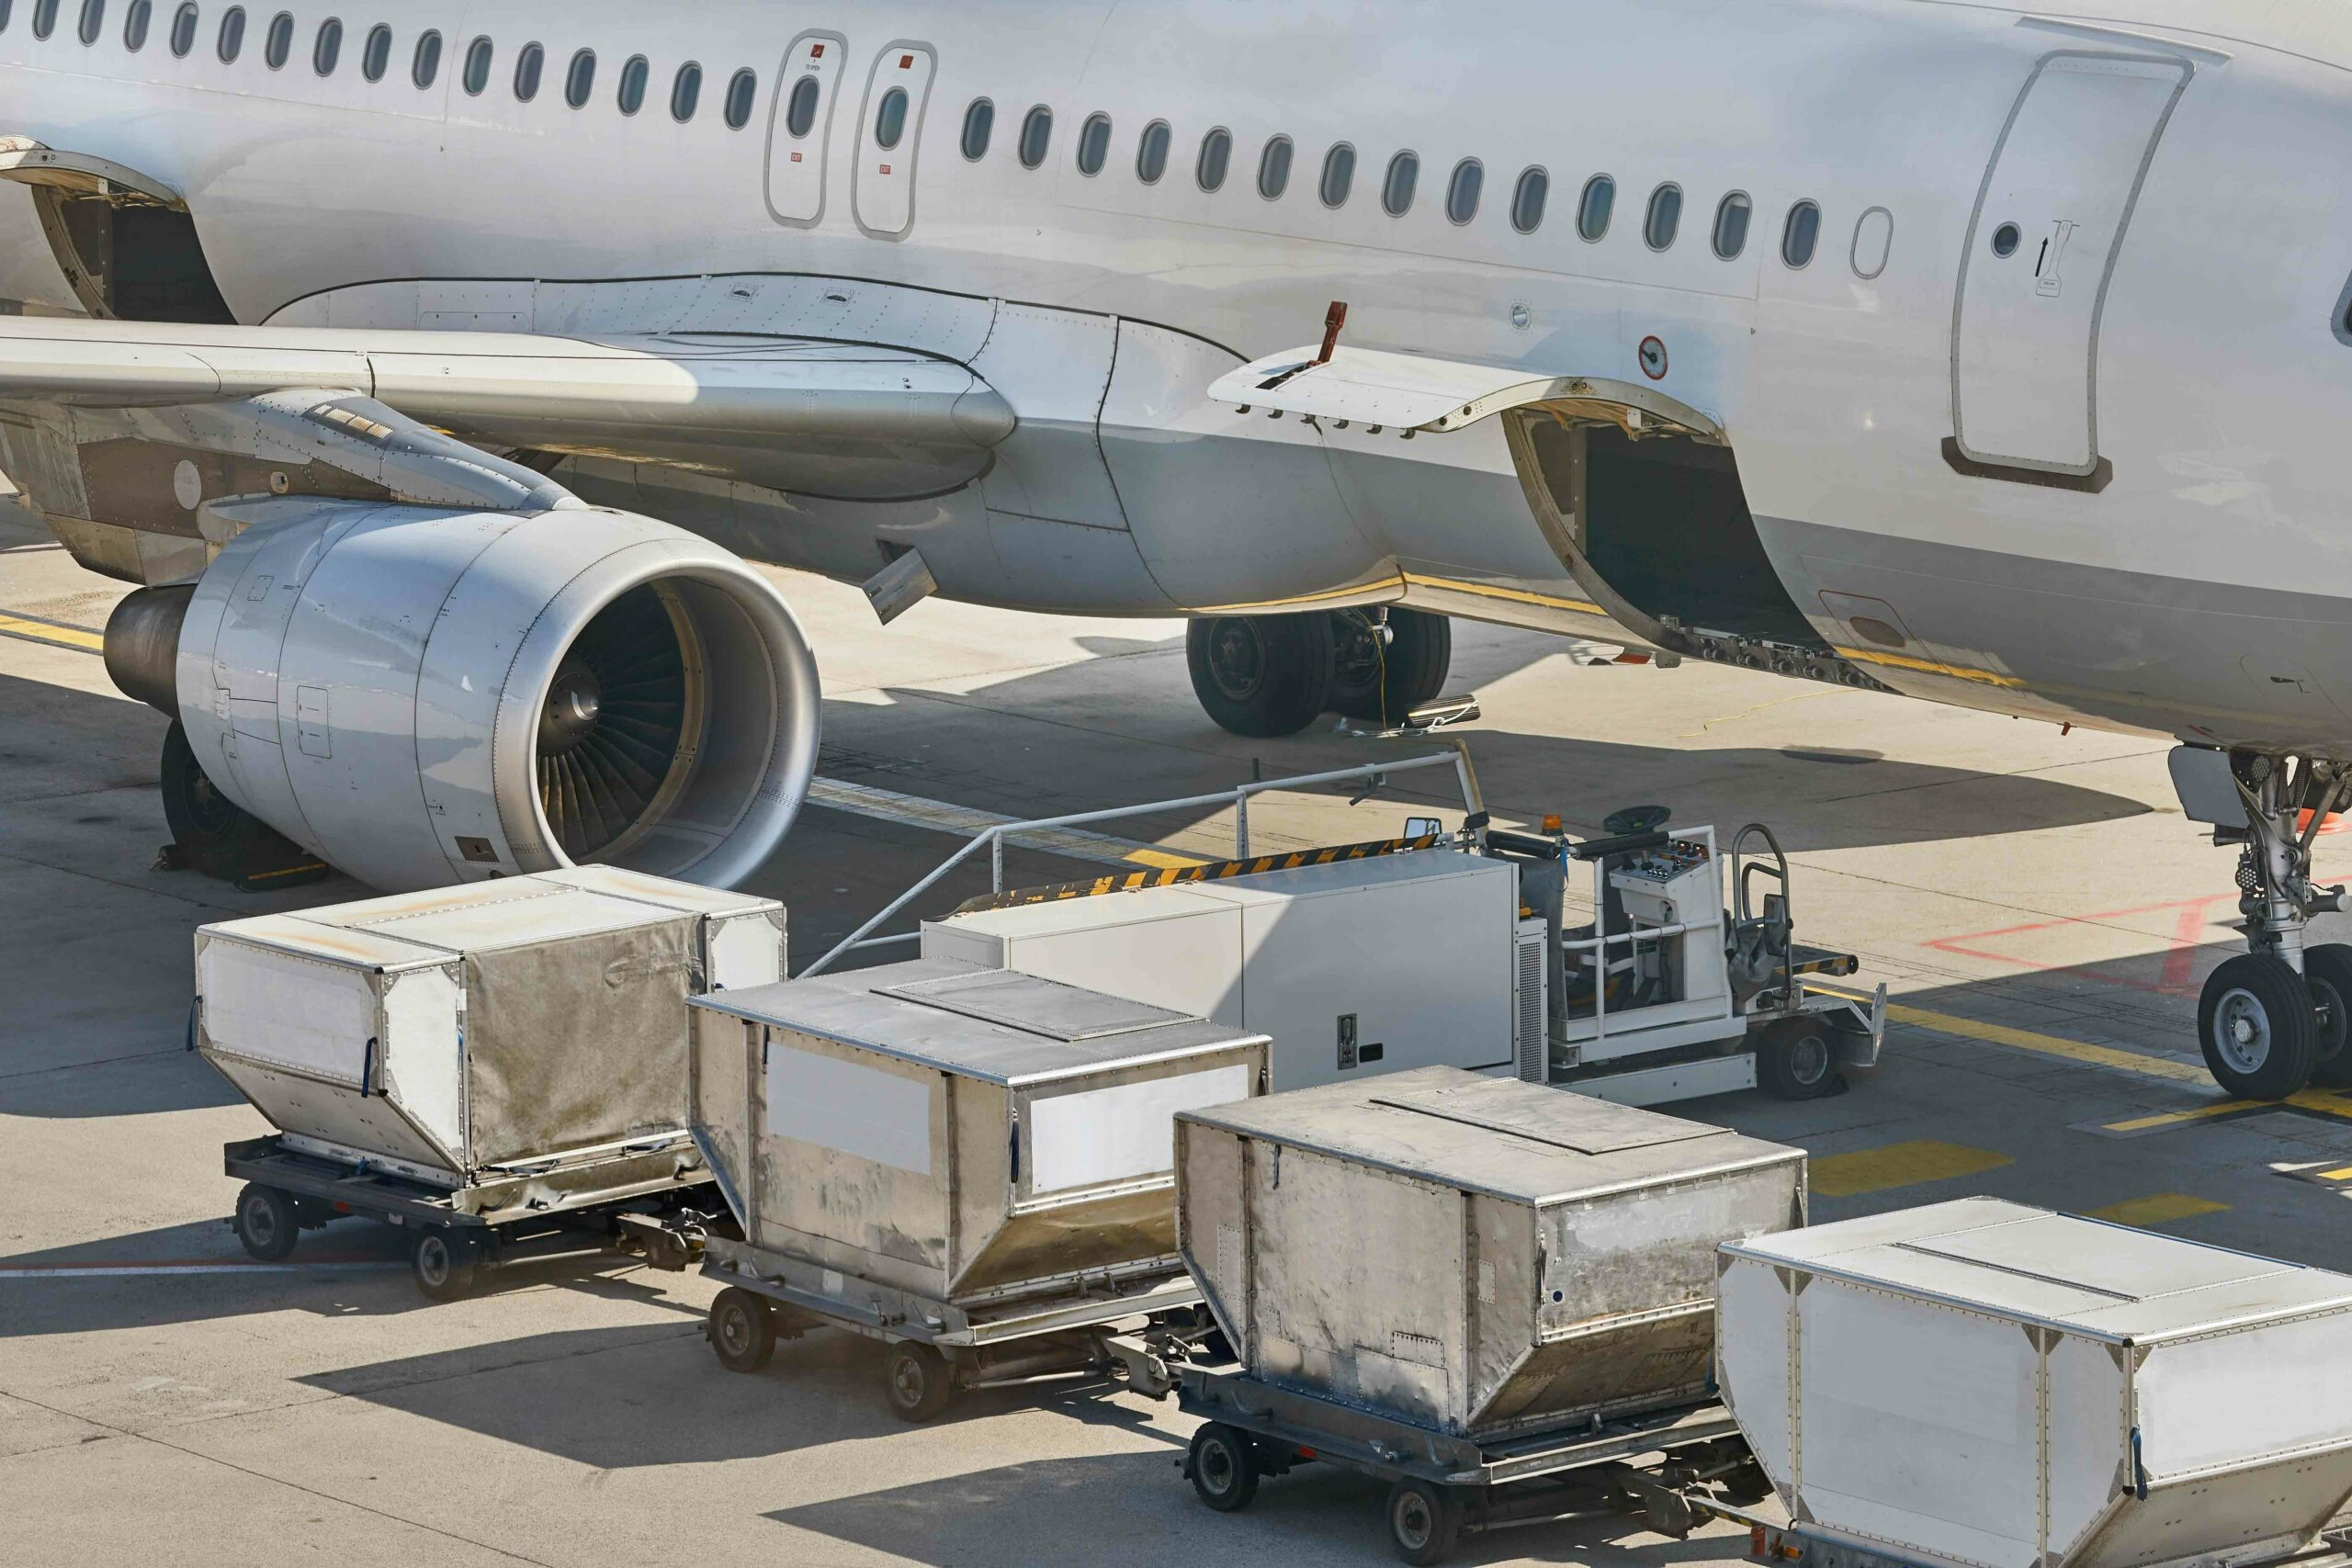 Airlines change policy from passenger to cargo in Q2 1